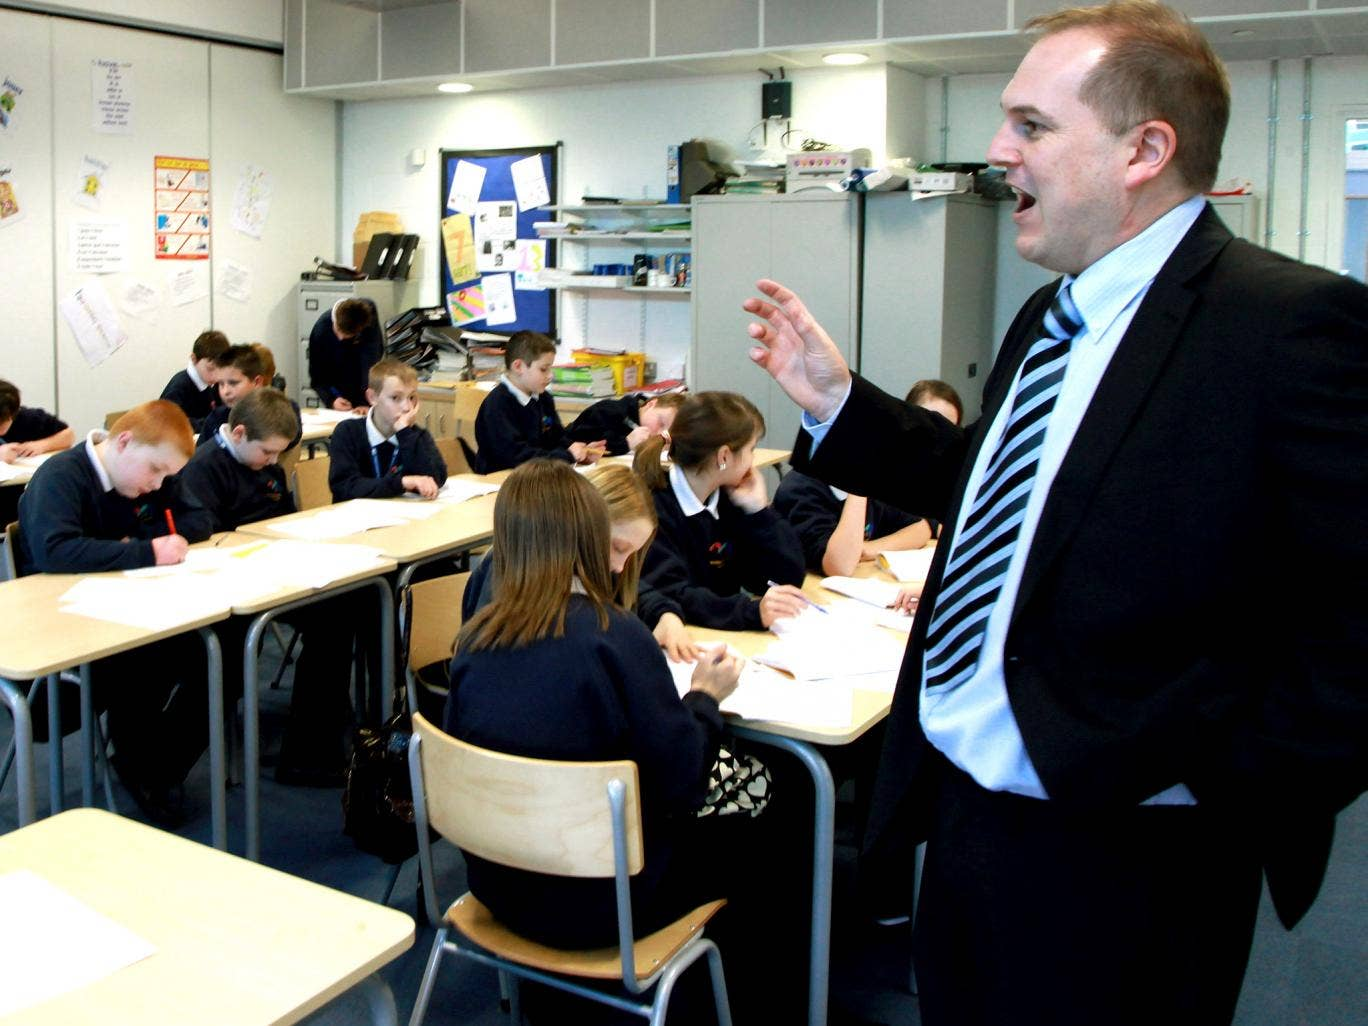 Average academy heads' salaries in both primary and secondary schools are higher than in local authority schools